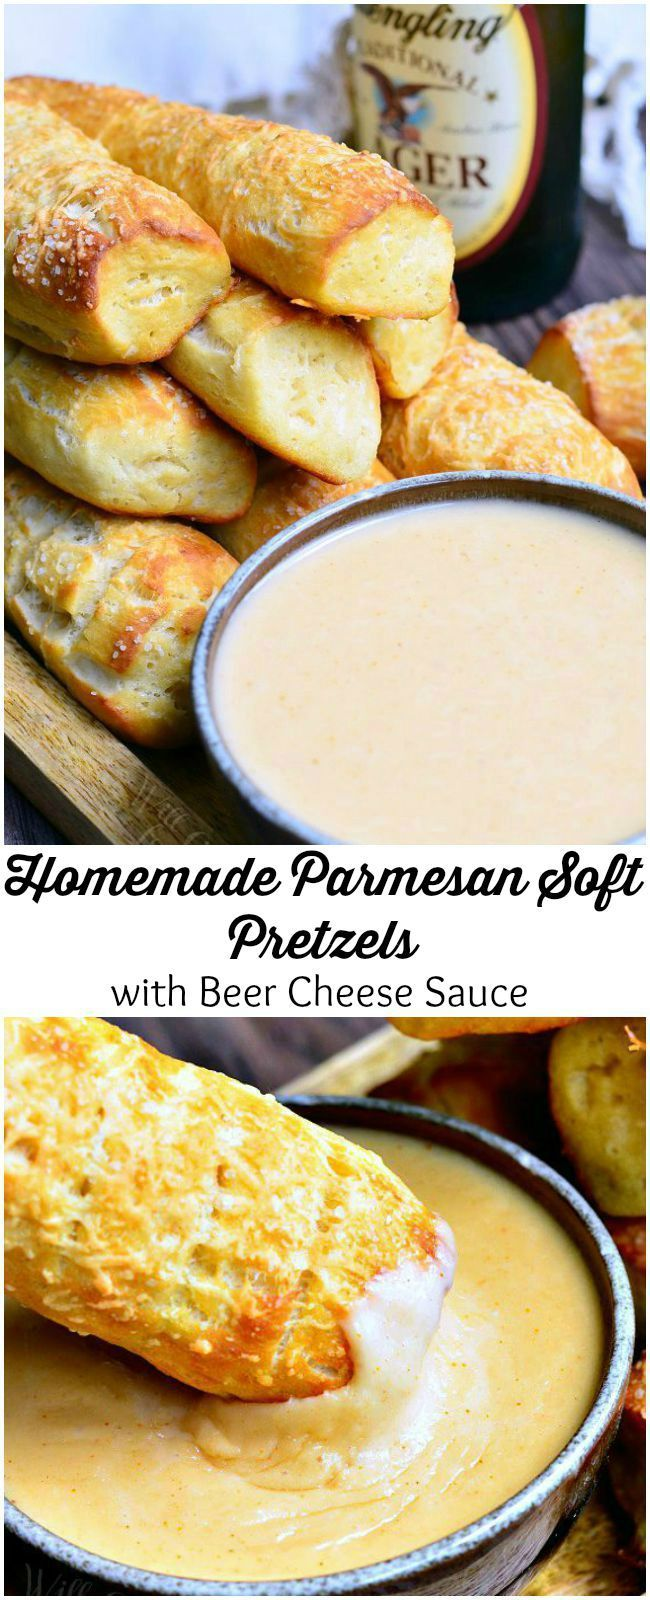 Homemade Parmesan Soft Pretzel Sticks with Beer Cheese Sauce   from willcookforsmiles.com